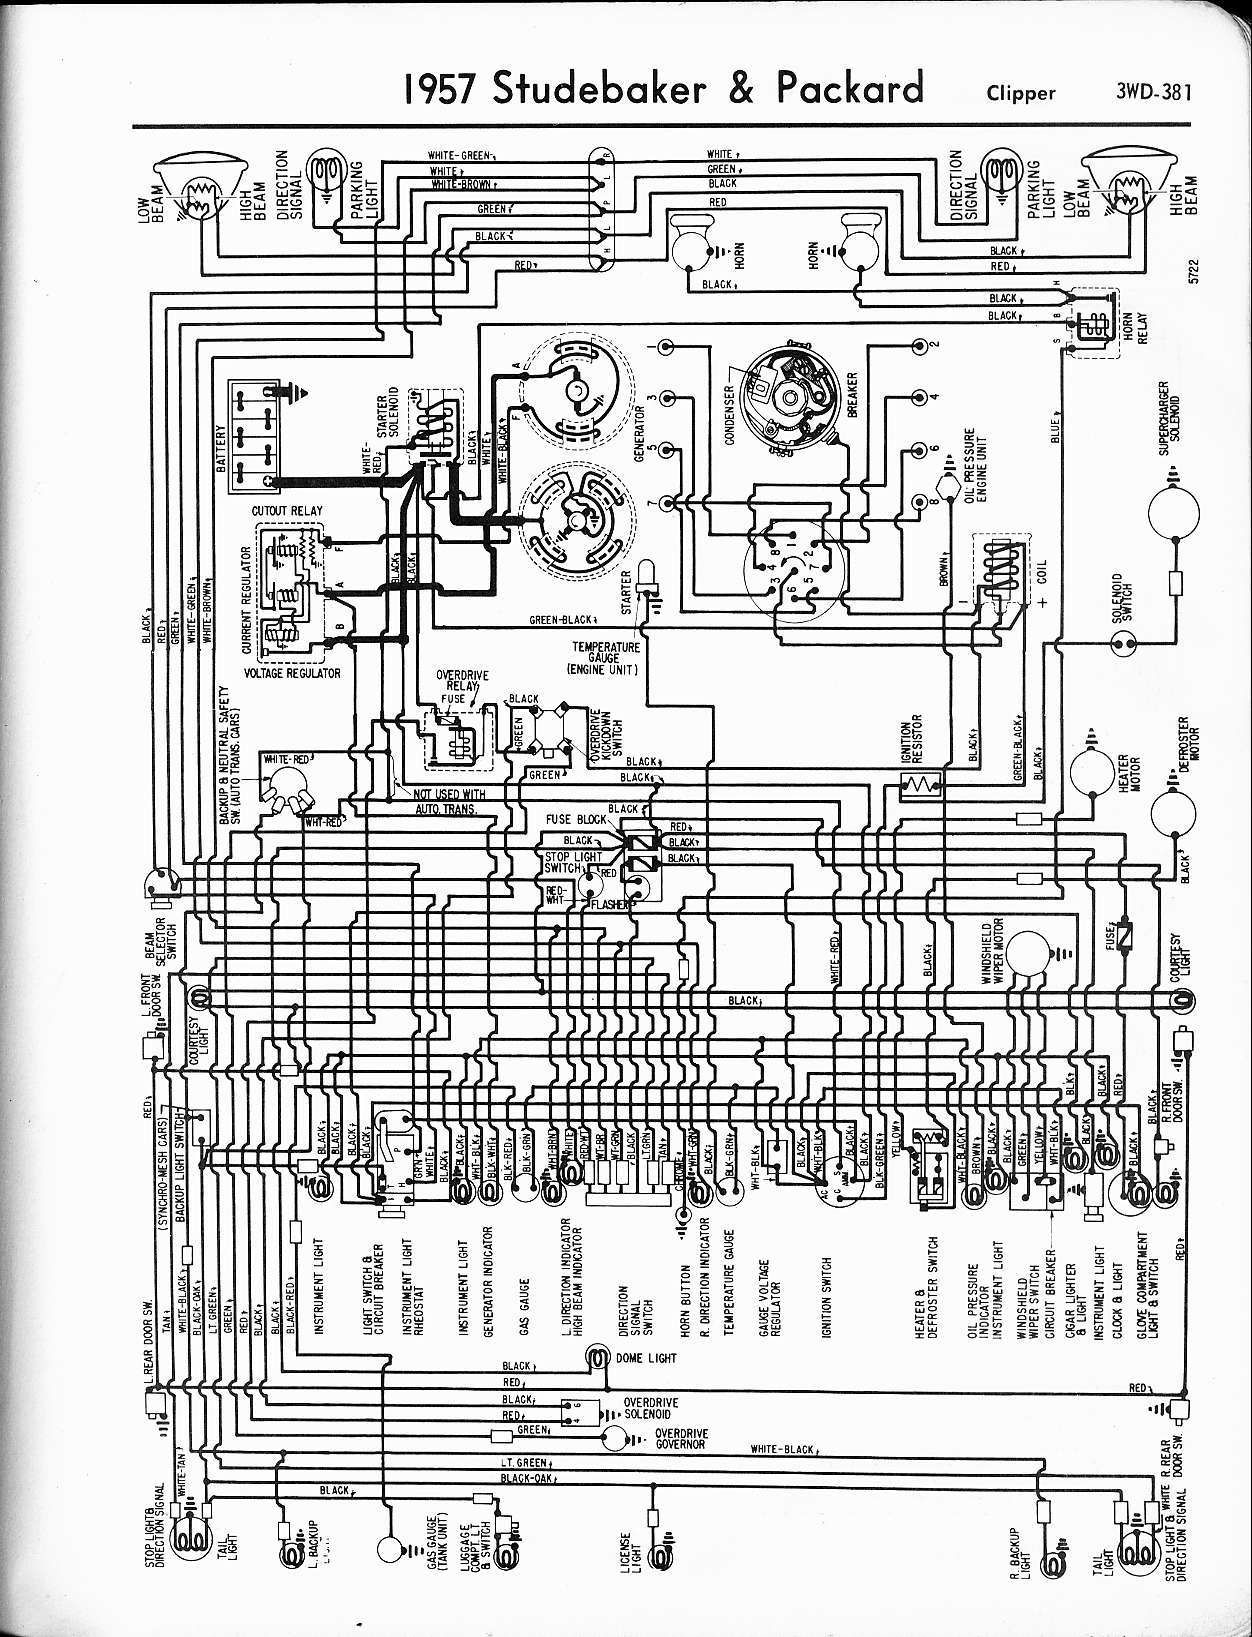 Wiring Diagram Cars Trucks. Wiring Diagram Cars Trucks ... on